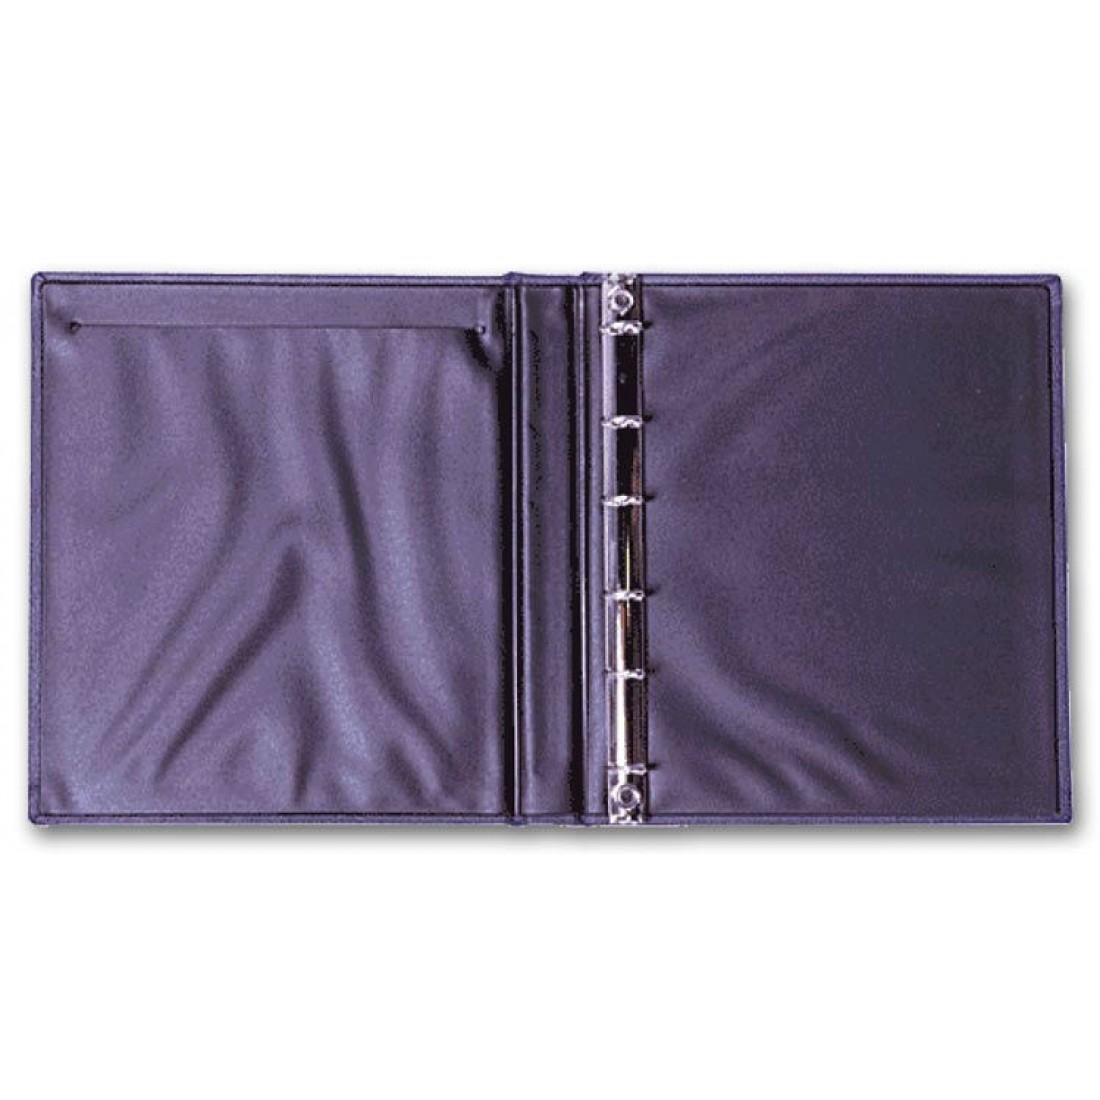 Duplicate Deskbook Check Cover (56501N) - Check Binders & Covers  - Business Checks